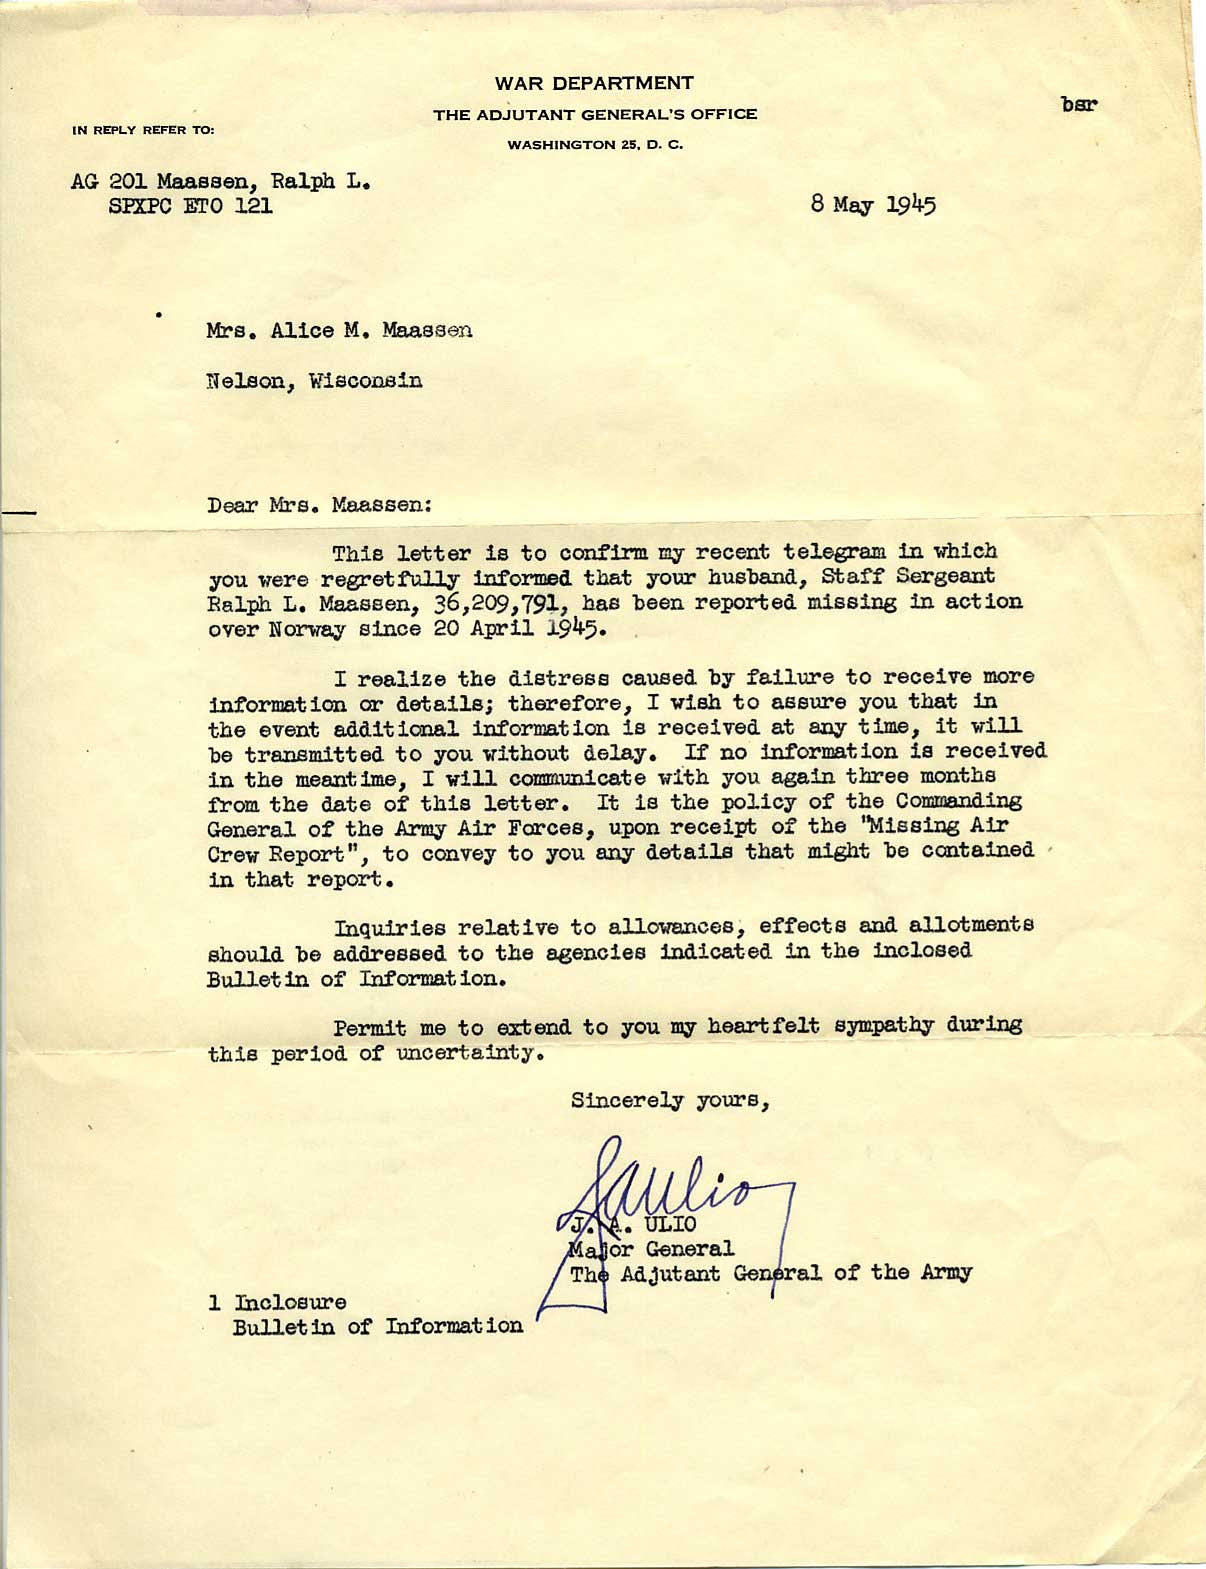 Image result for mia letter